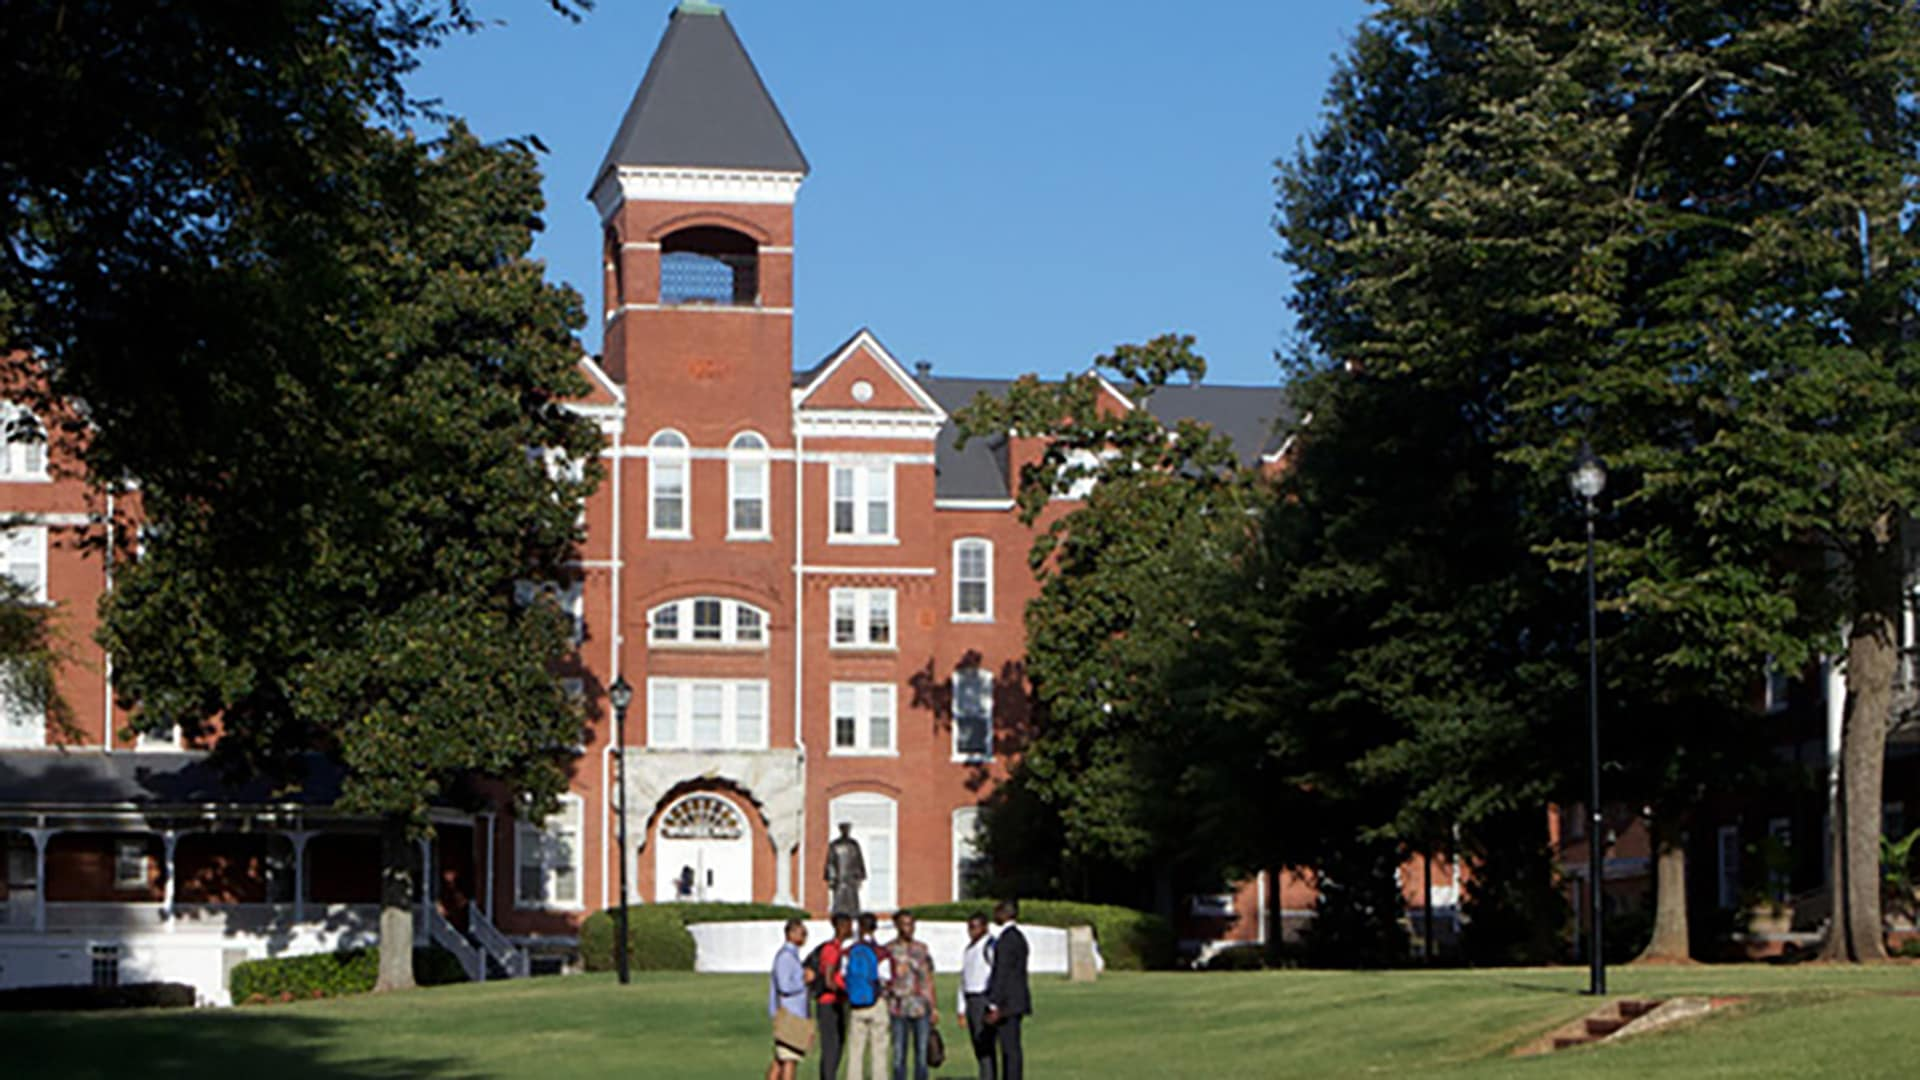 Student, dismissed by Howard U over tweet, goes to Morehouse College